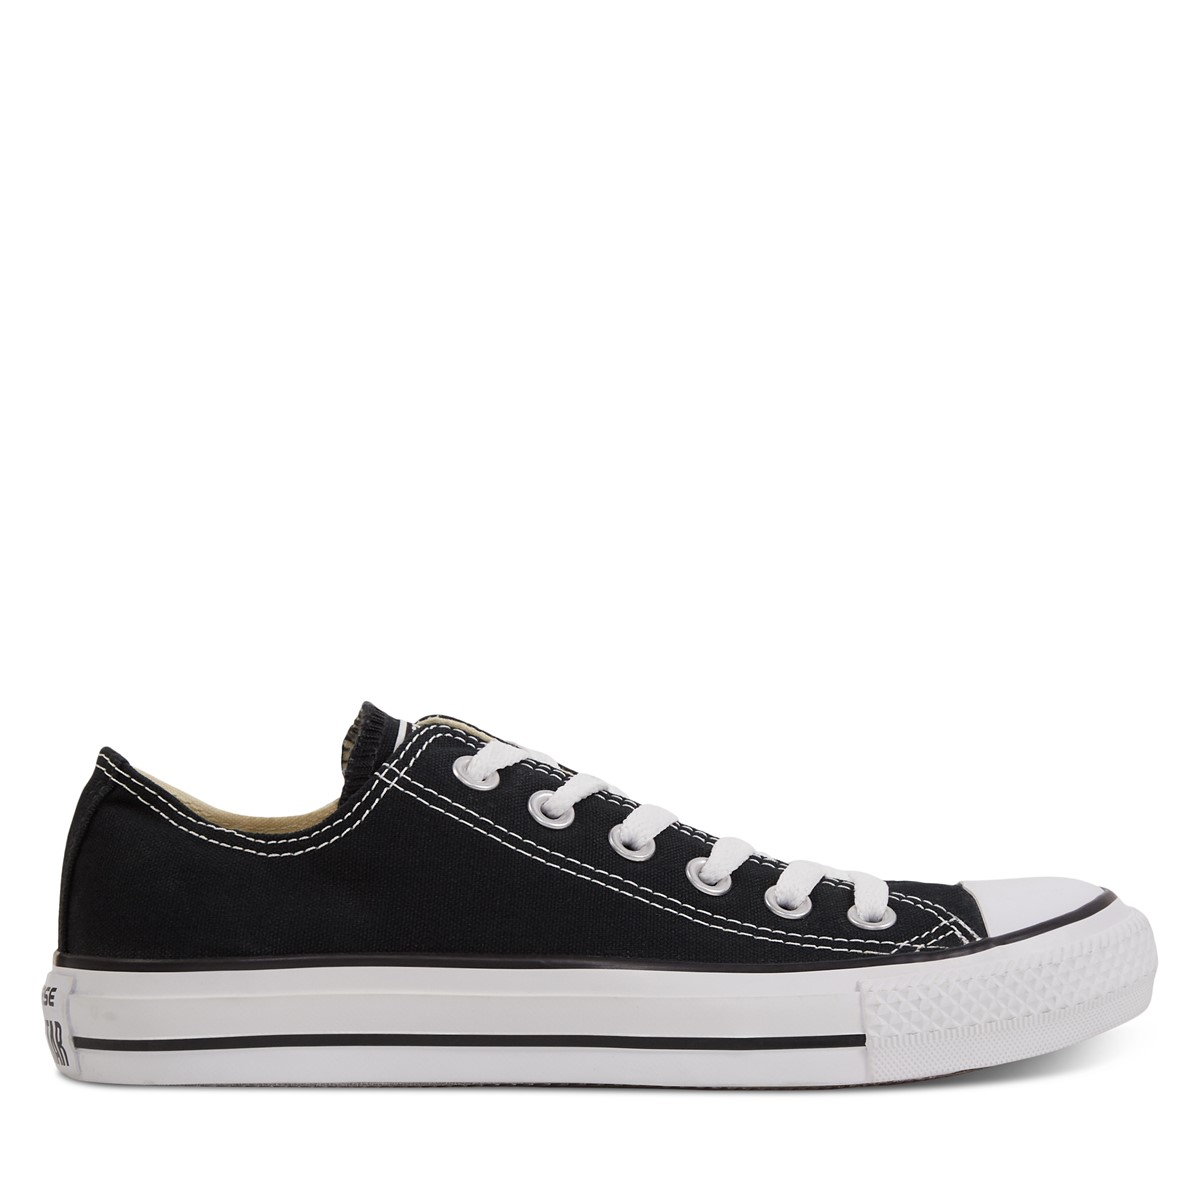 Women's Chuck Taylor Core OX Sneakers in Black